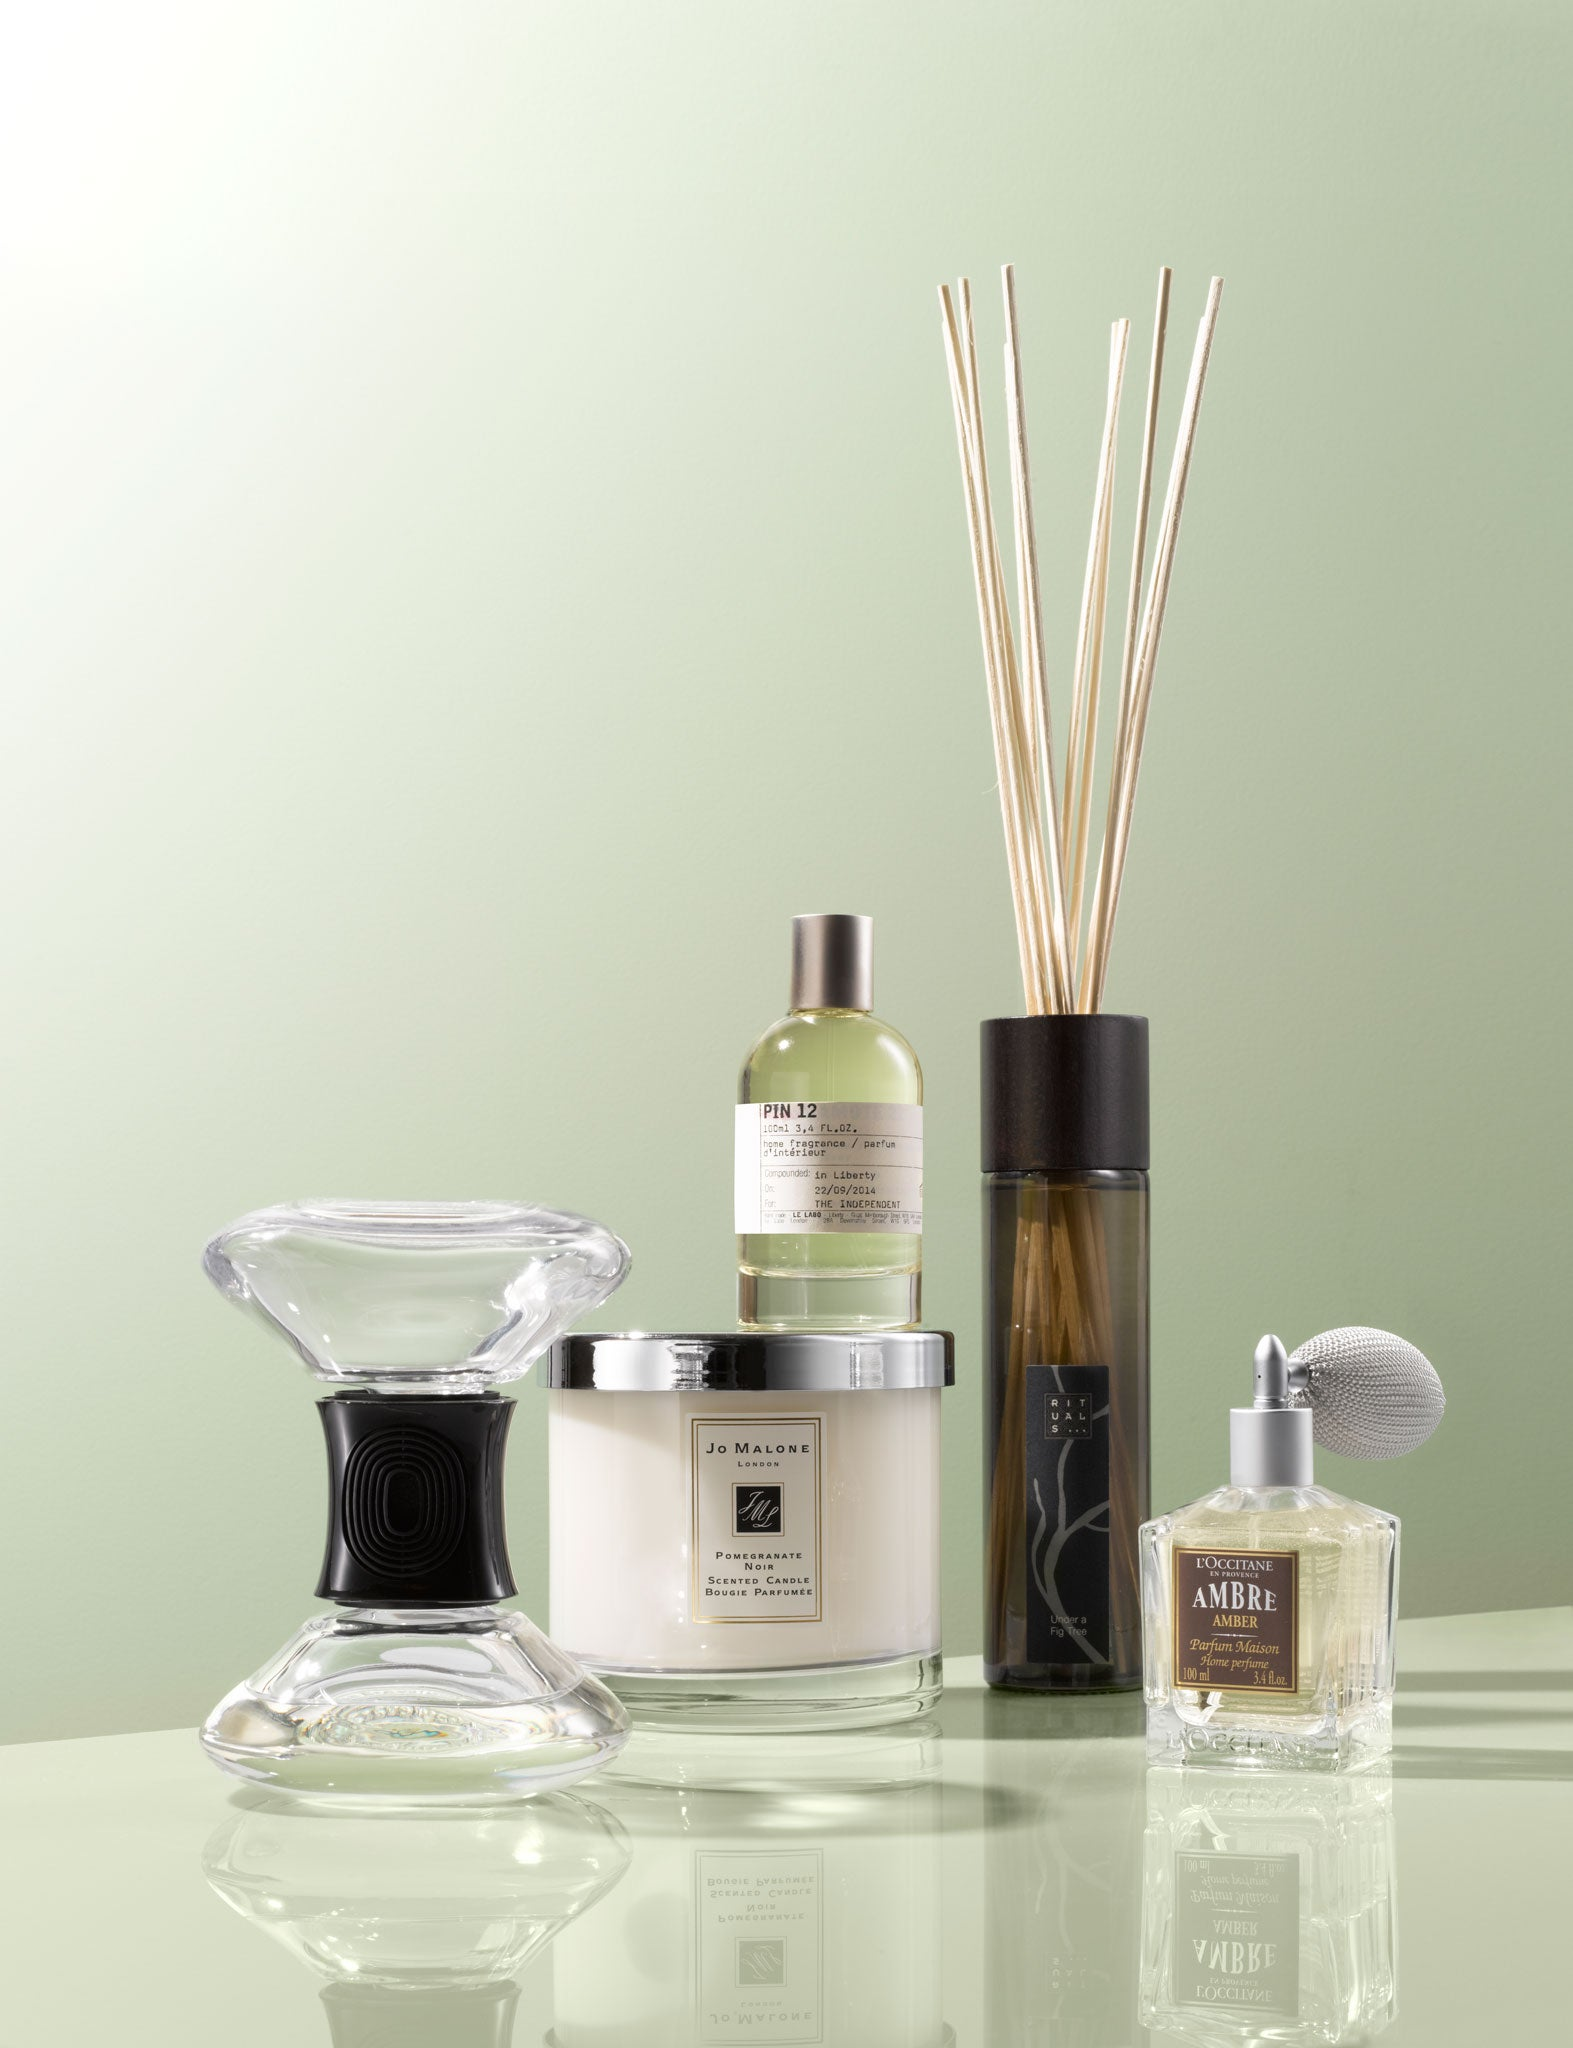 The best winter fragrances: These warming scents will help to keep